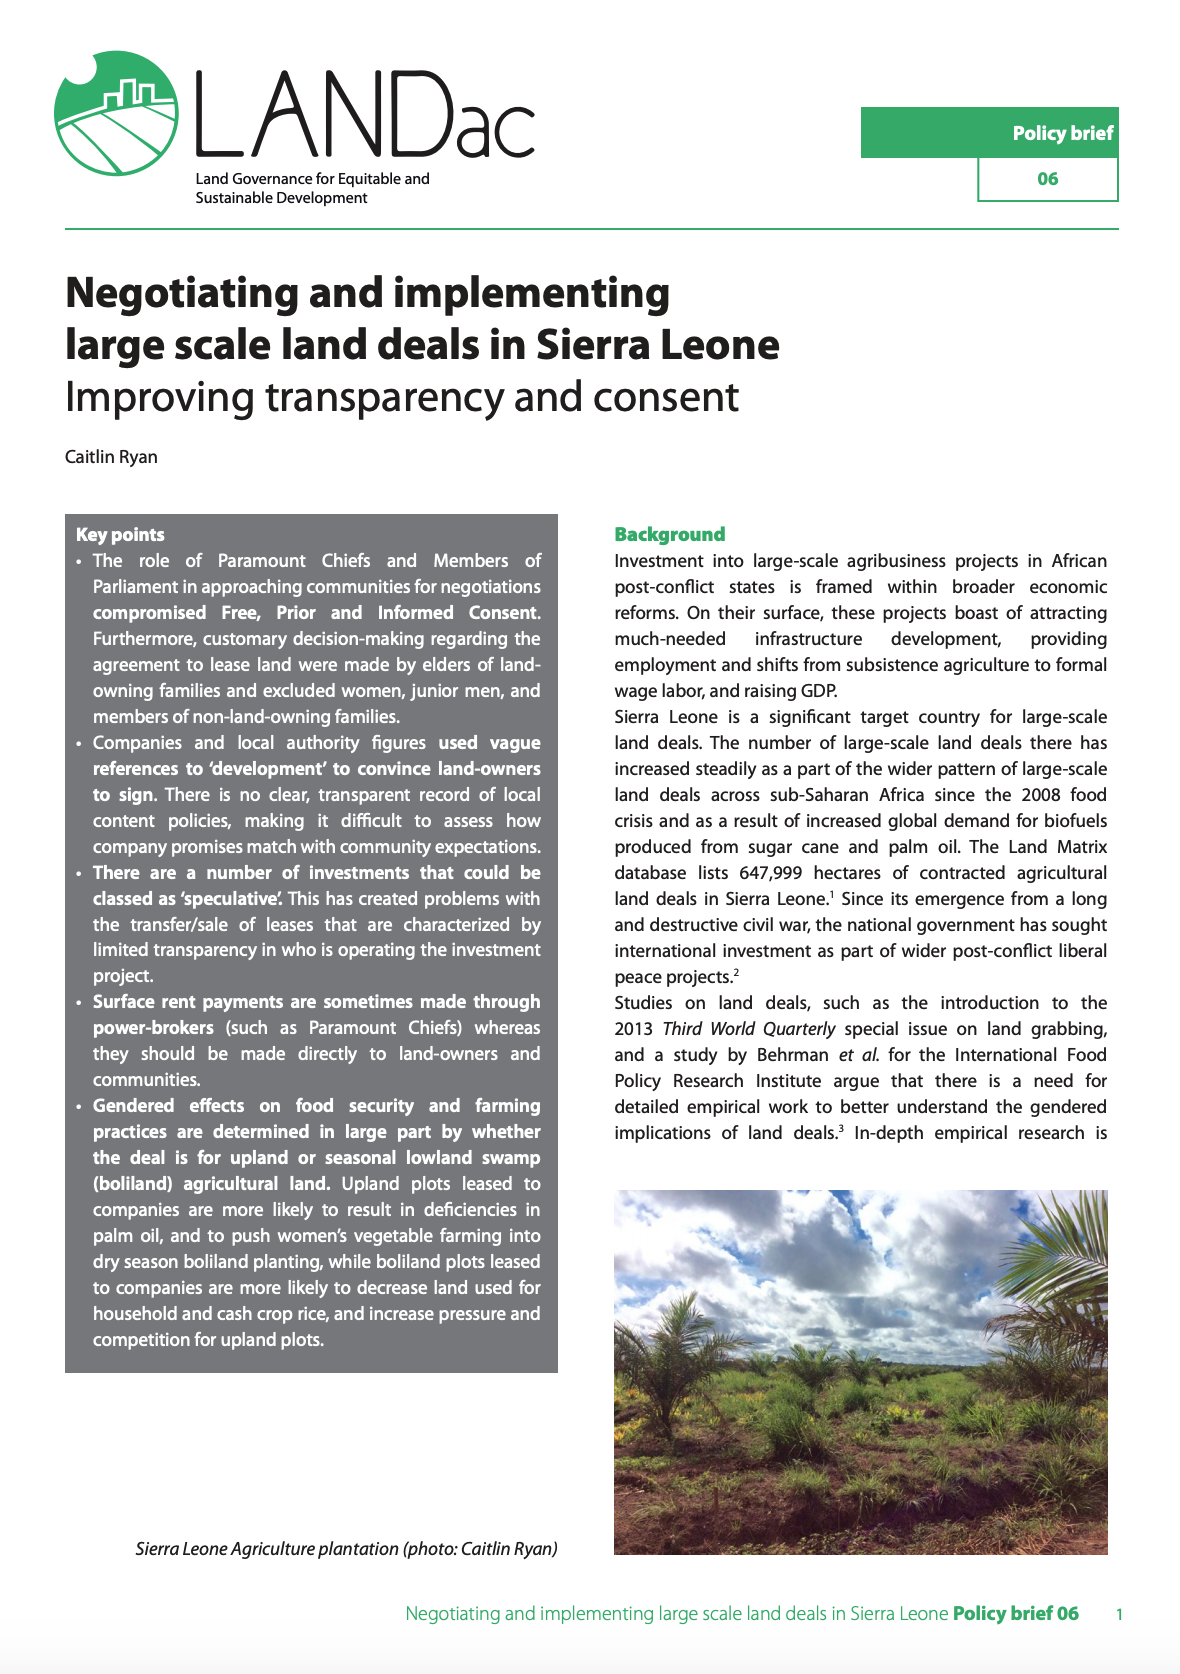 LANDac | Policy Brief #6 Negotiating and implementing large scale land deals in Sierra Leone cover image